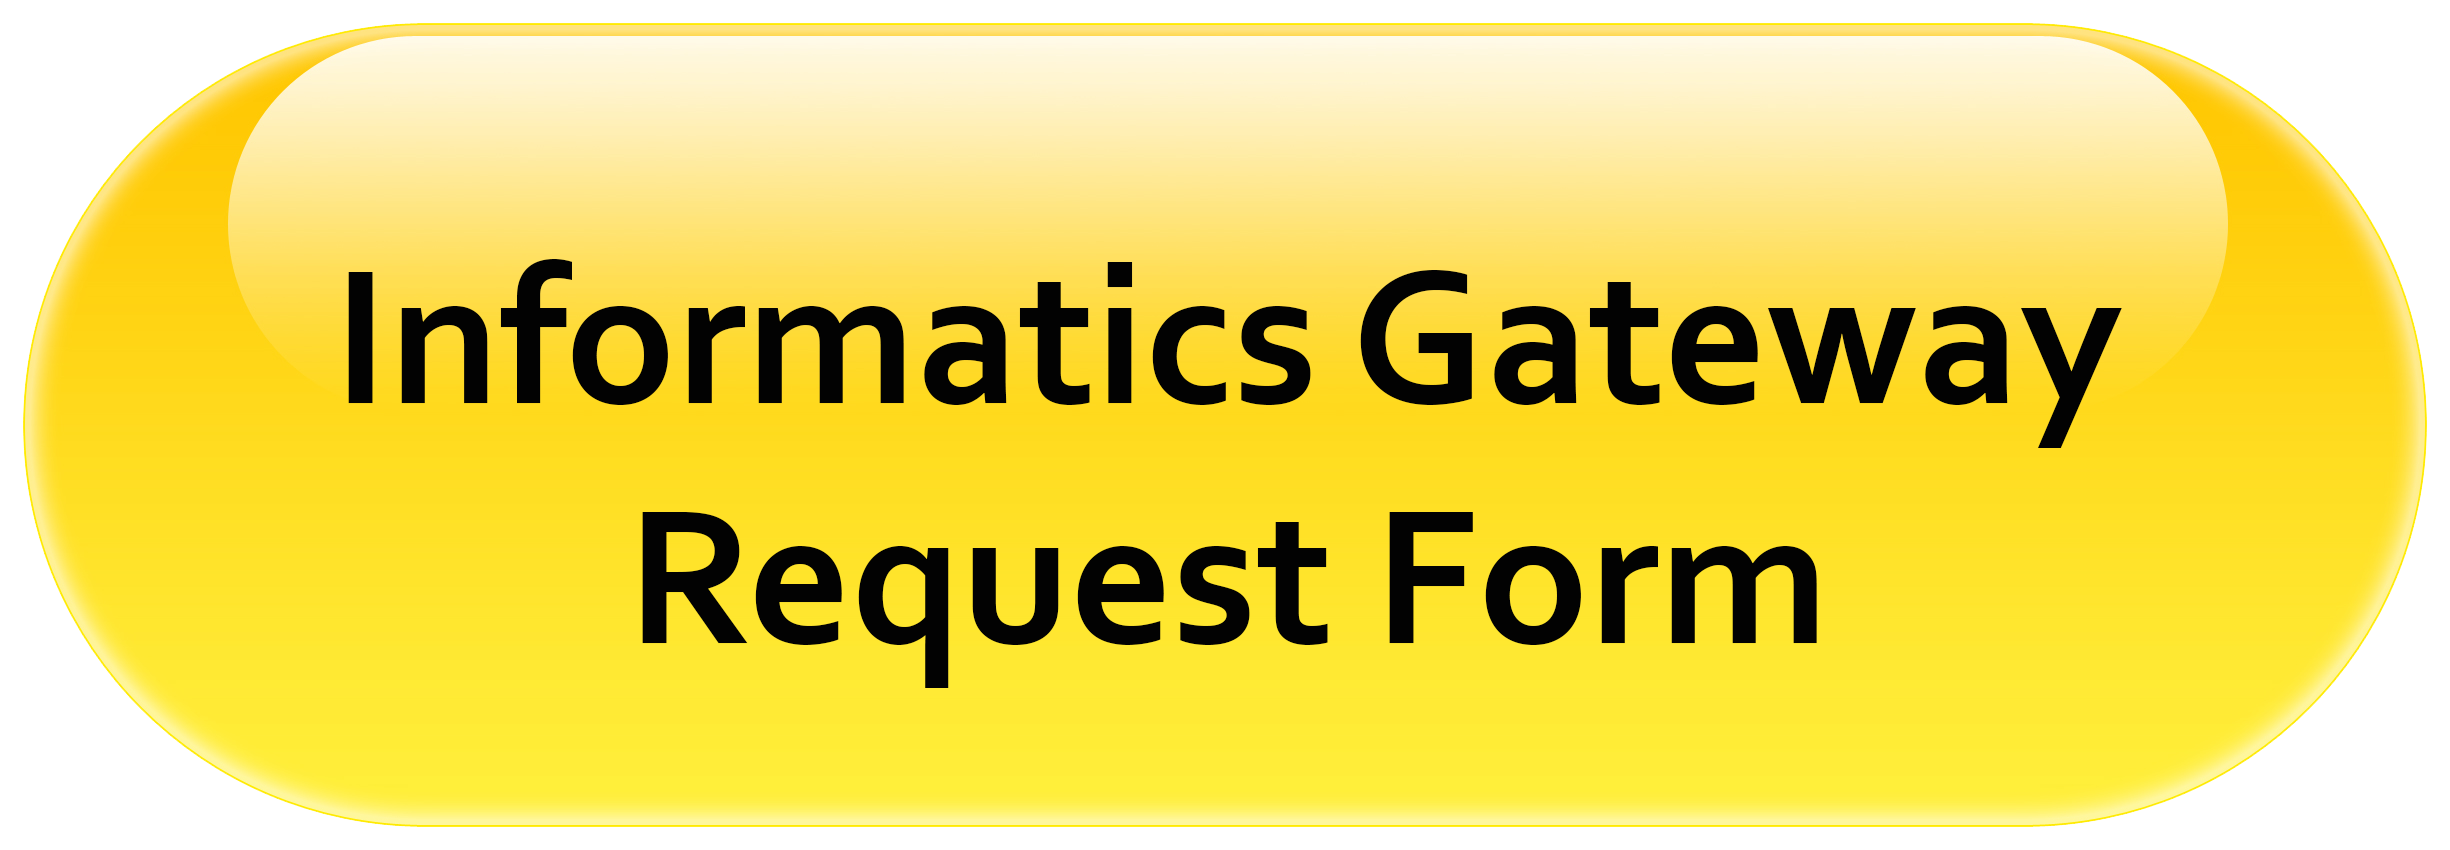 Informatics Gateway Request Form Button